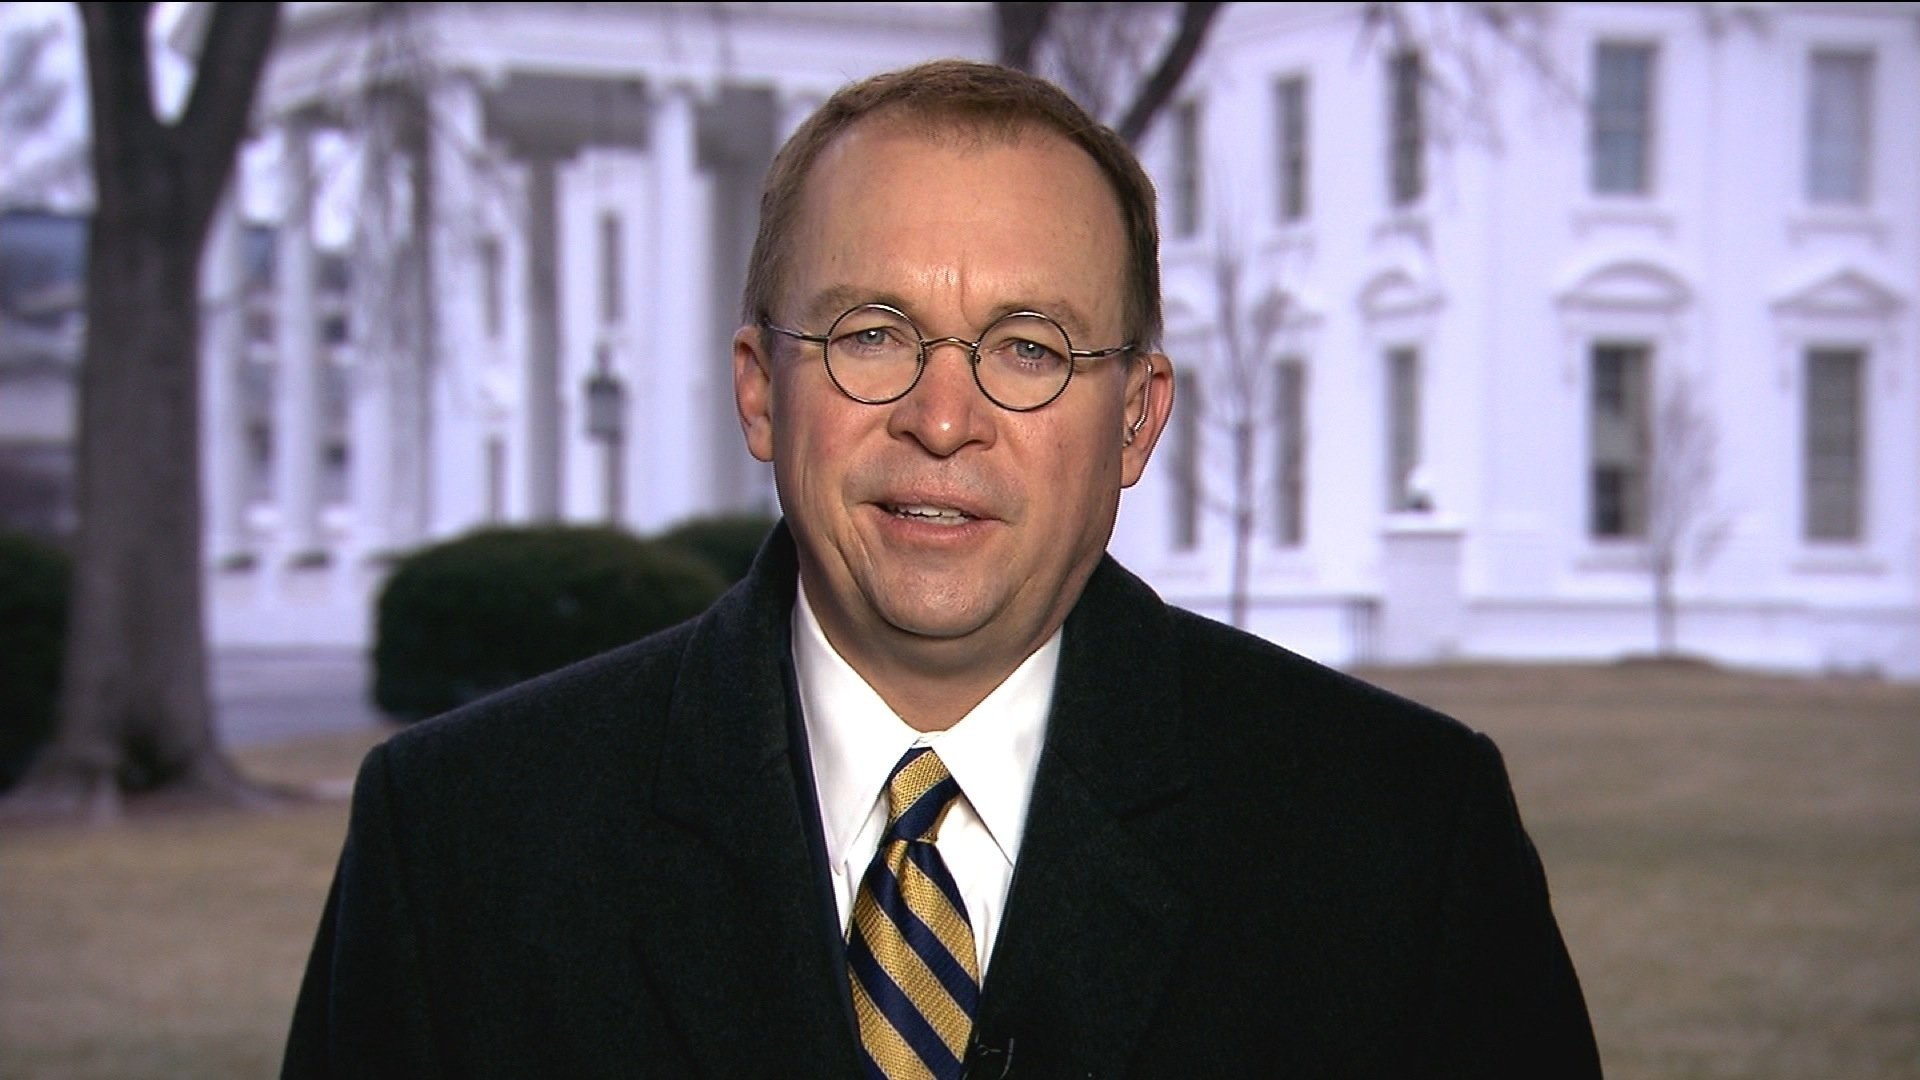 Mick Mulvaney, a fiscal conservative, has led the Trump's Office of Management and Budget and Consumer Financial Protection Bureau. (File Photo)